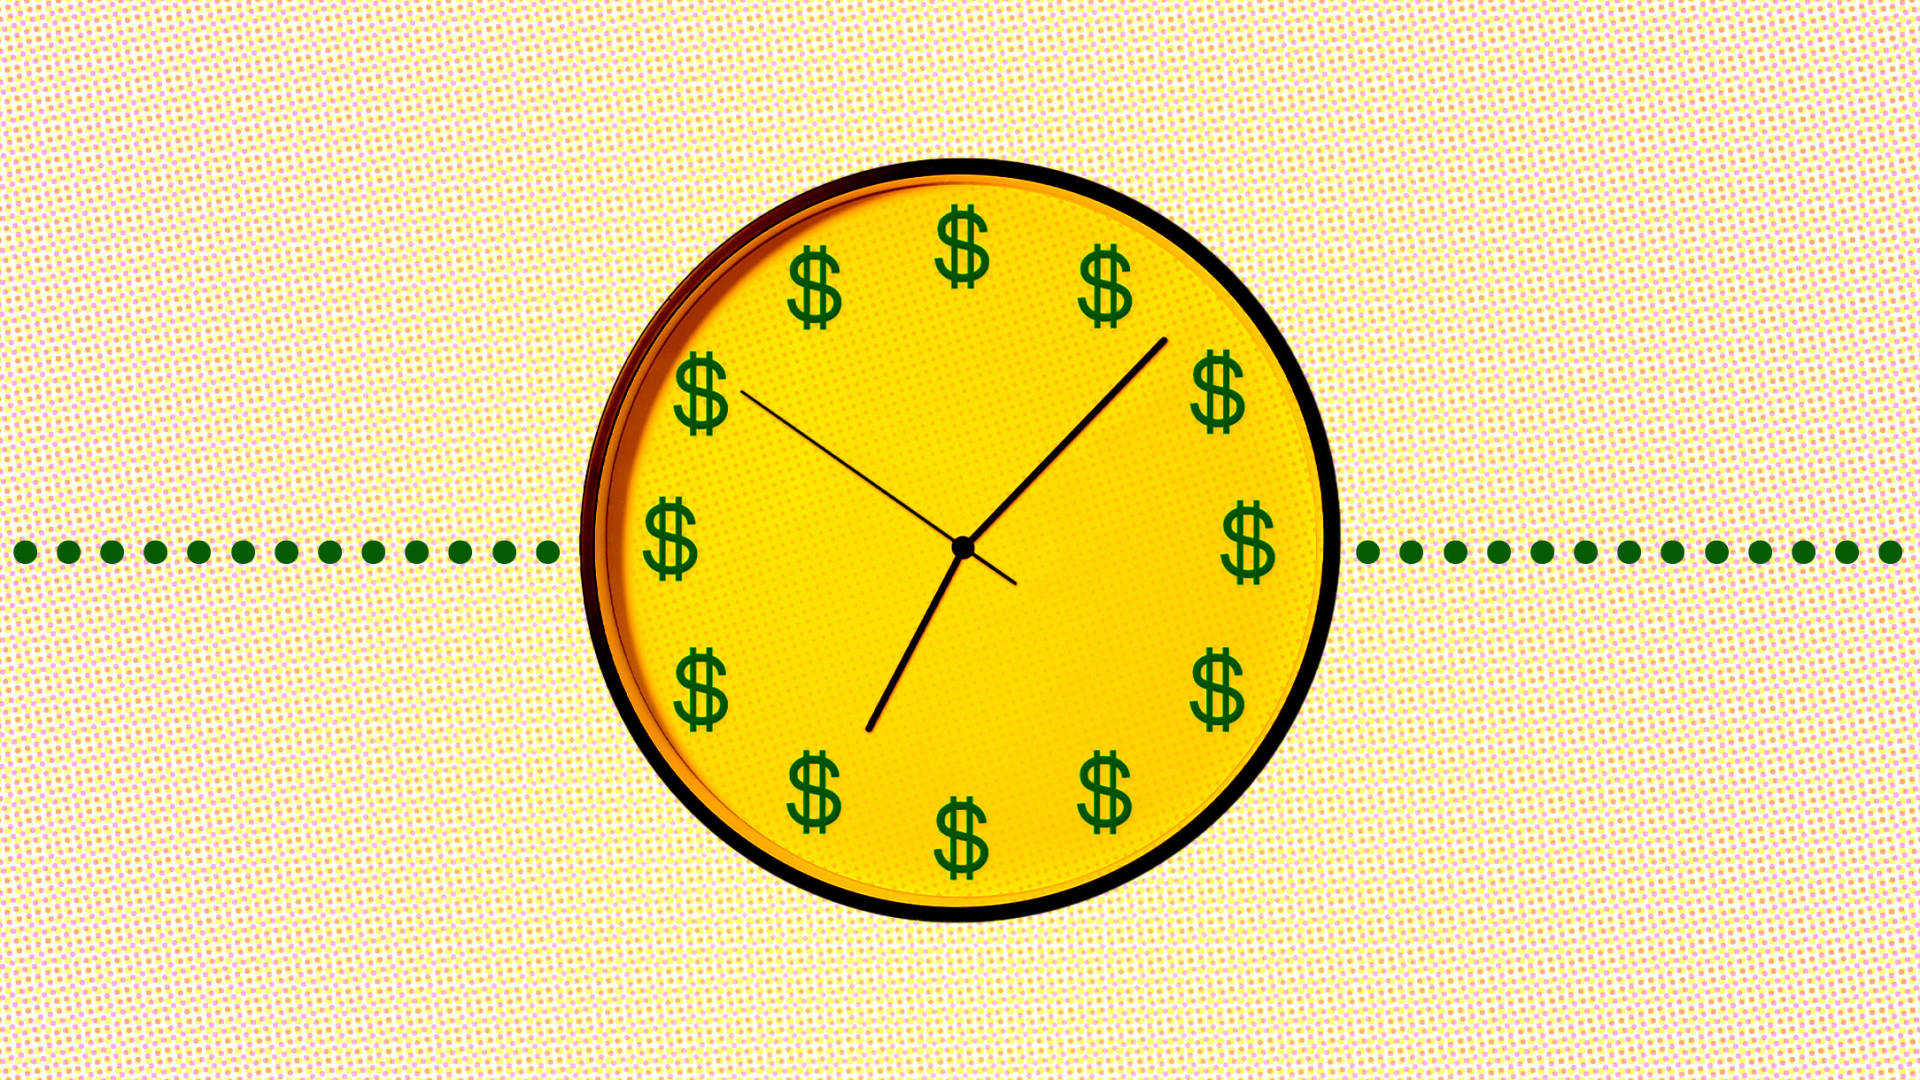 Why You Shouldn't Wait for 'Normal' Times to Apply for a SBA Loan